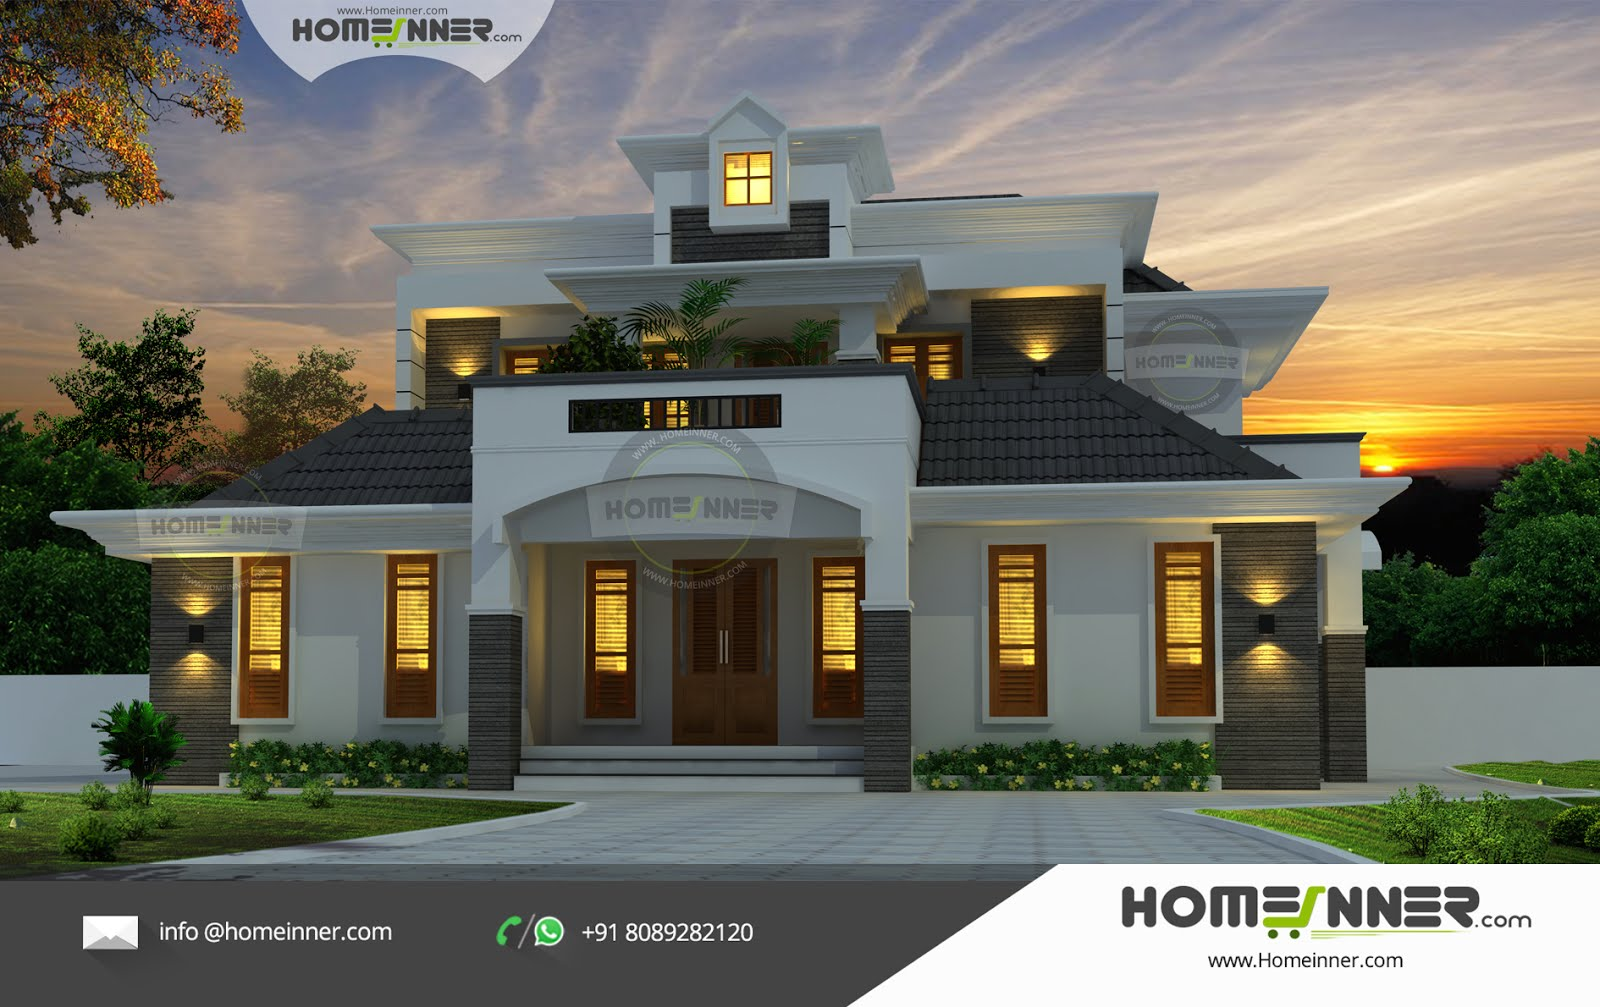 Architectural Home Plans Luxury: Best Indian Houses Design Collection